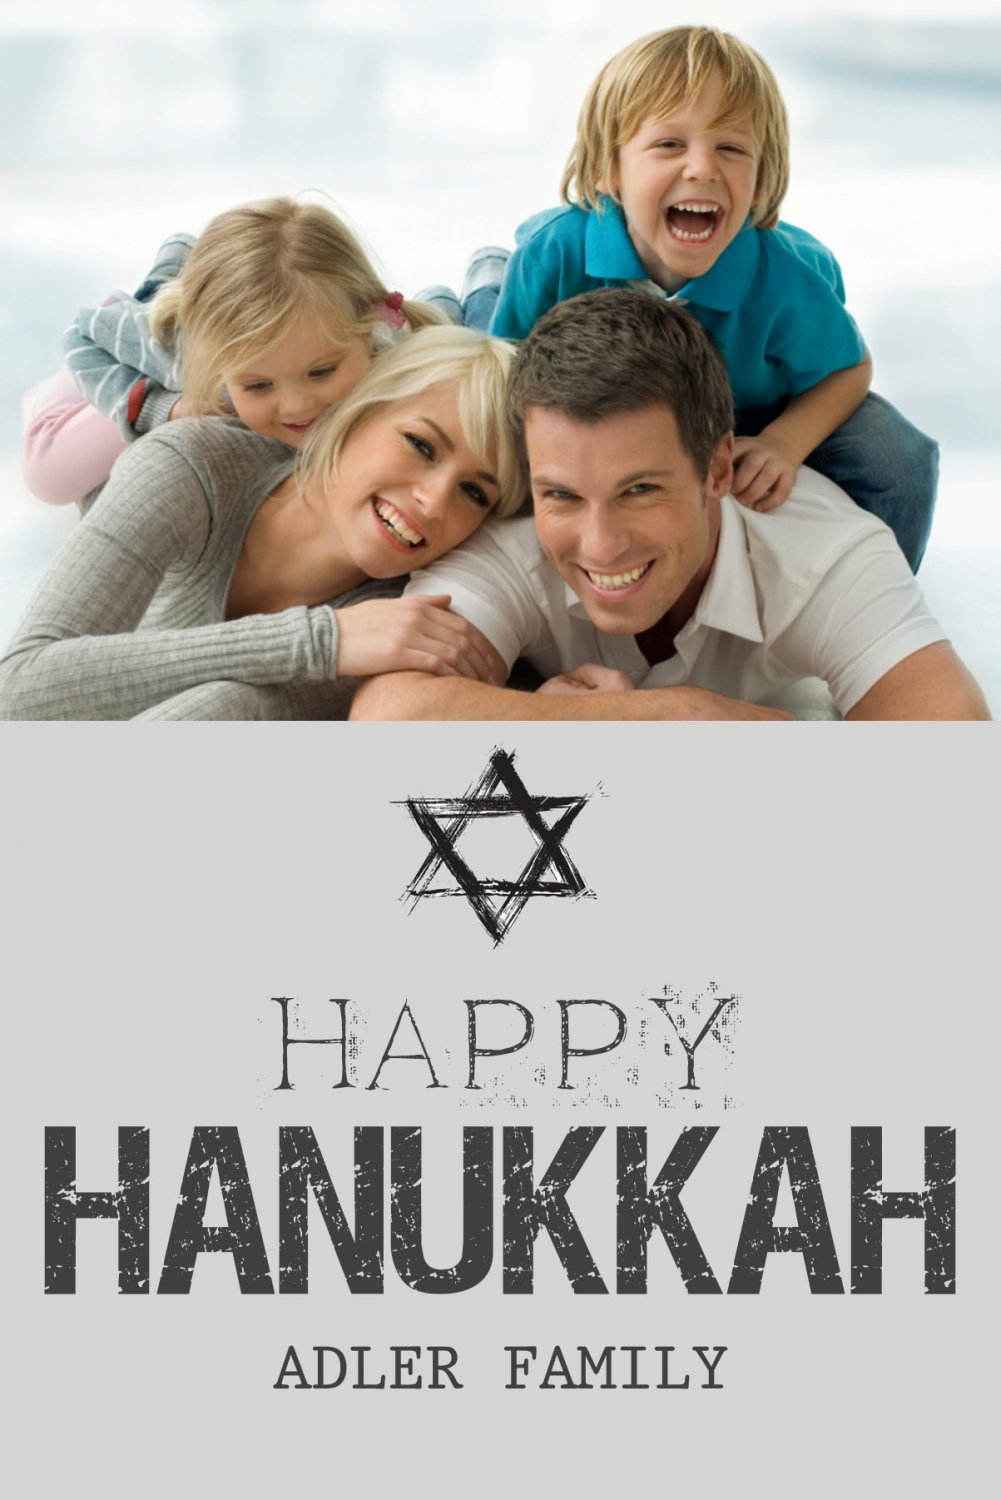 Hanukkah Cards, Hanukkah Greeting, Hanukkah Photo Cards